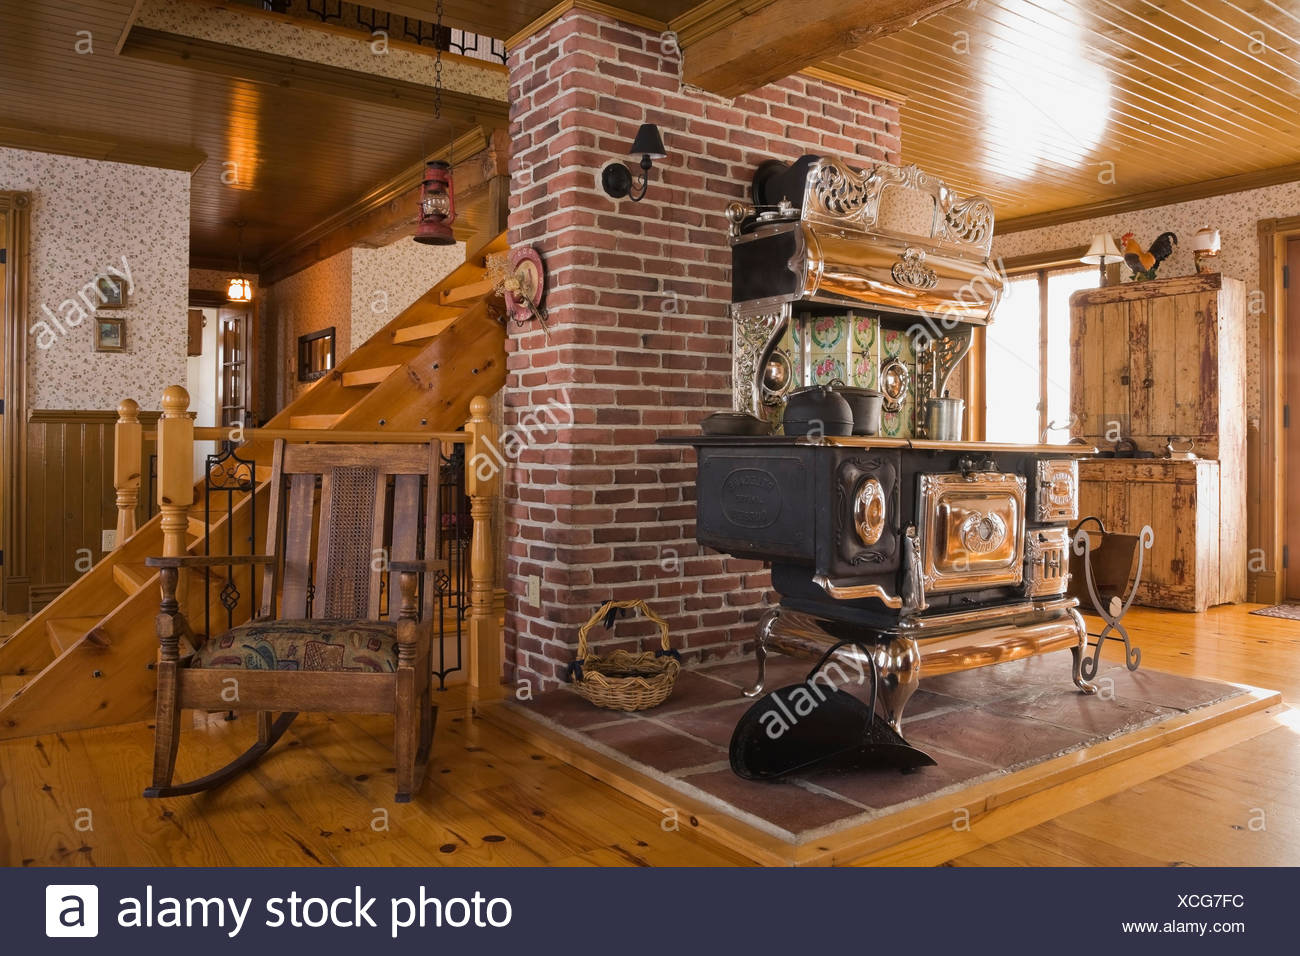 Old Legare's Rural antique wood stove in the living room a Canadiana cottage style fieldstone residential home built to look - Stock Image